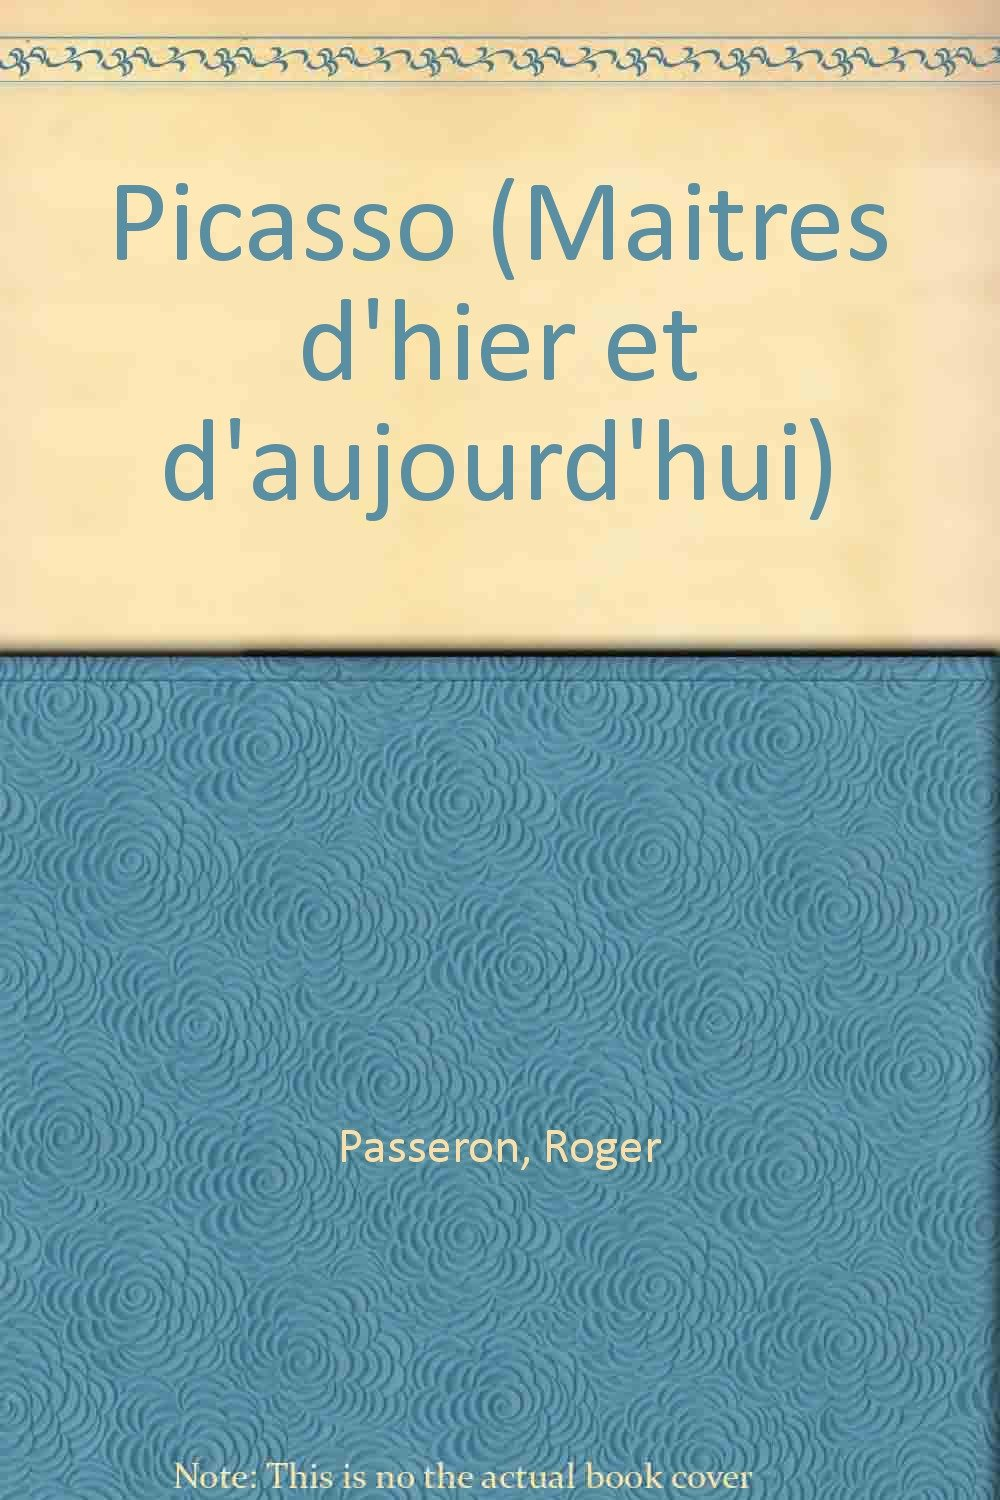 picasso maitres dhier et daujourdhui french edition